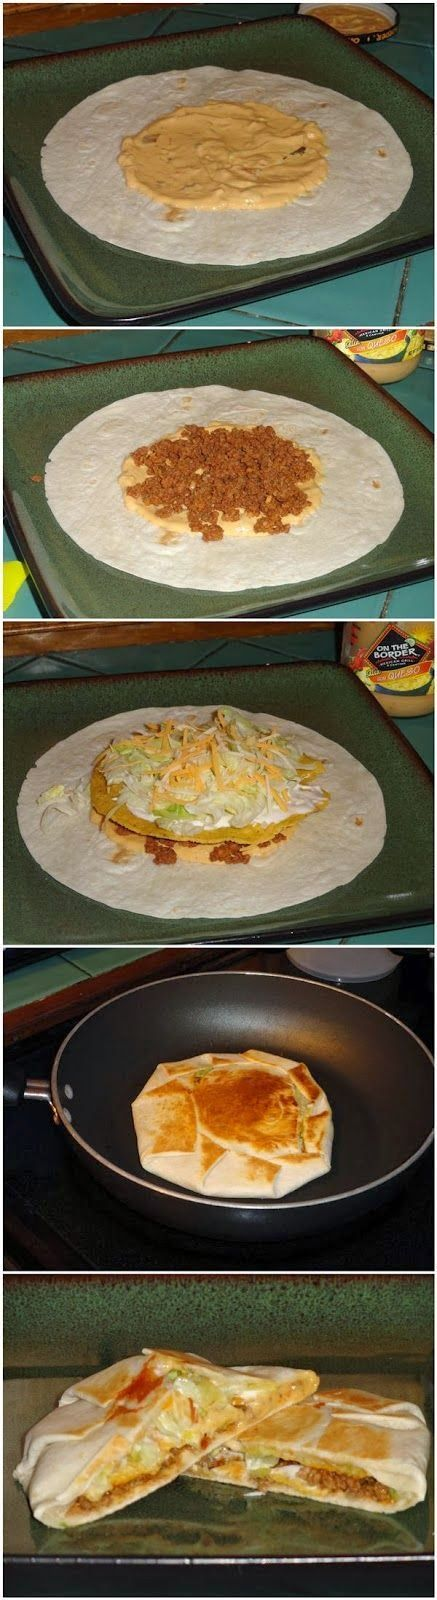 Yummy Crunchwrap Supremes... YESSSSS!!!!! I'm going to try this with vegan ingredients.